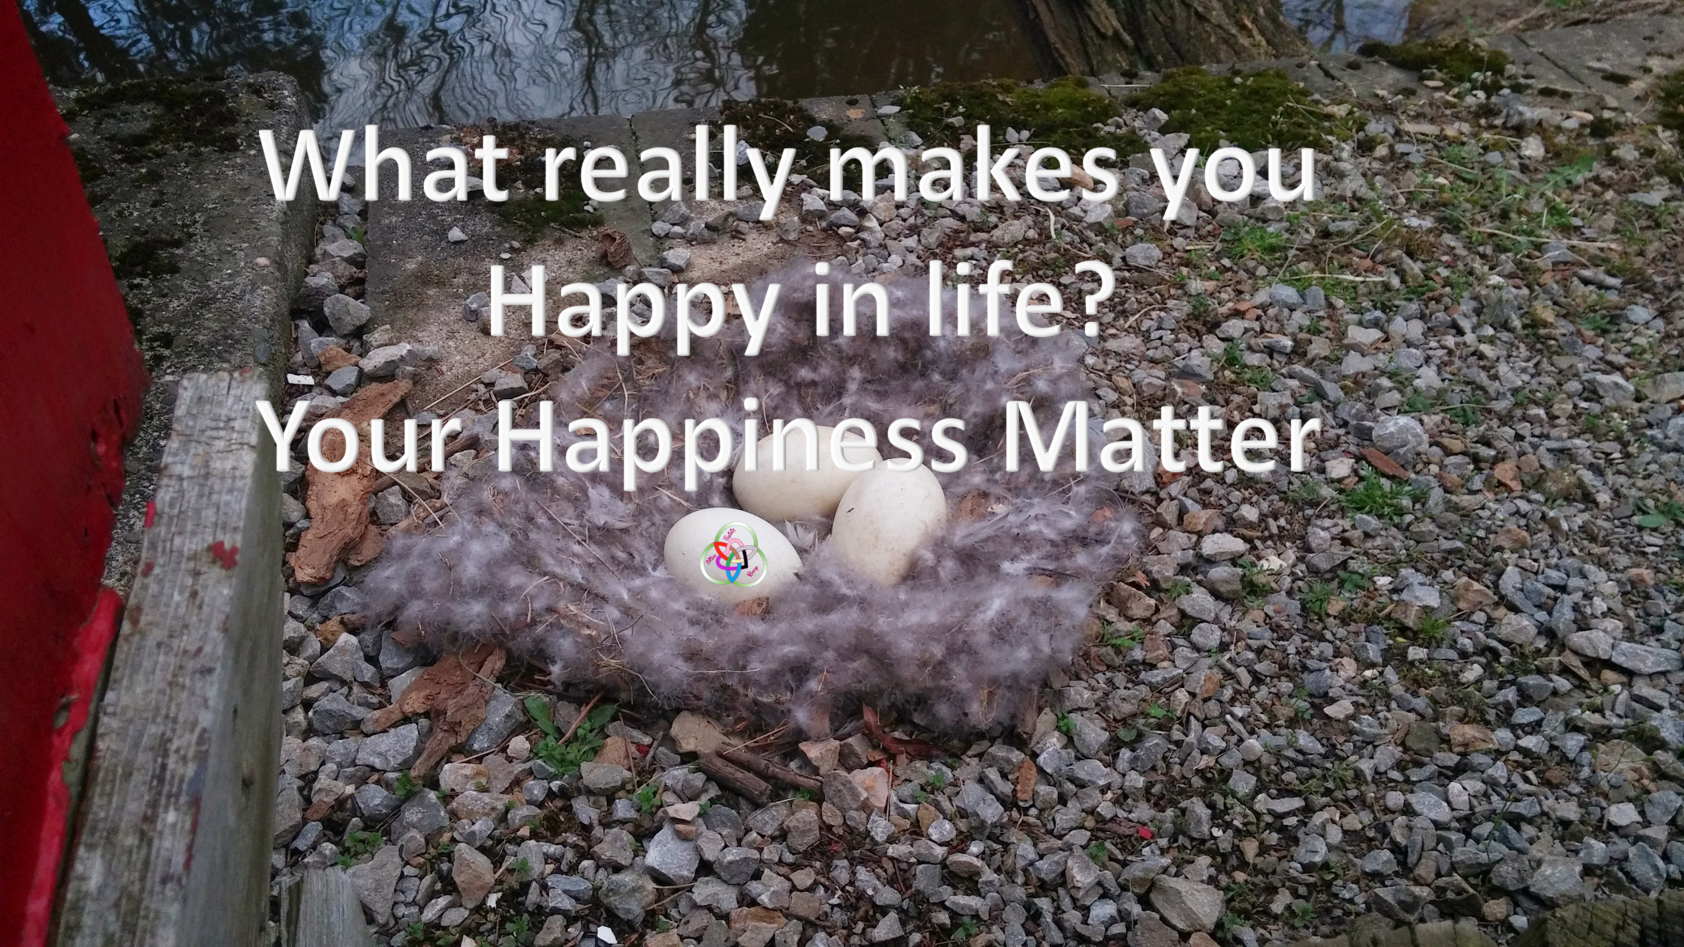 Your Happiness Matter